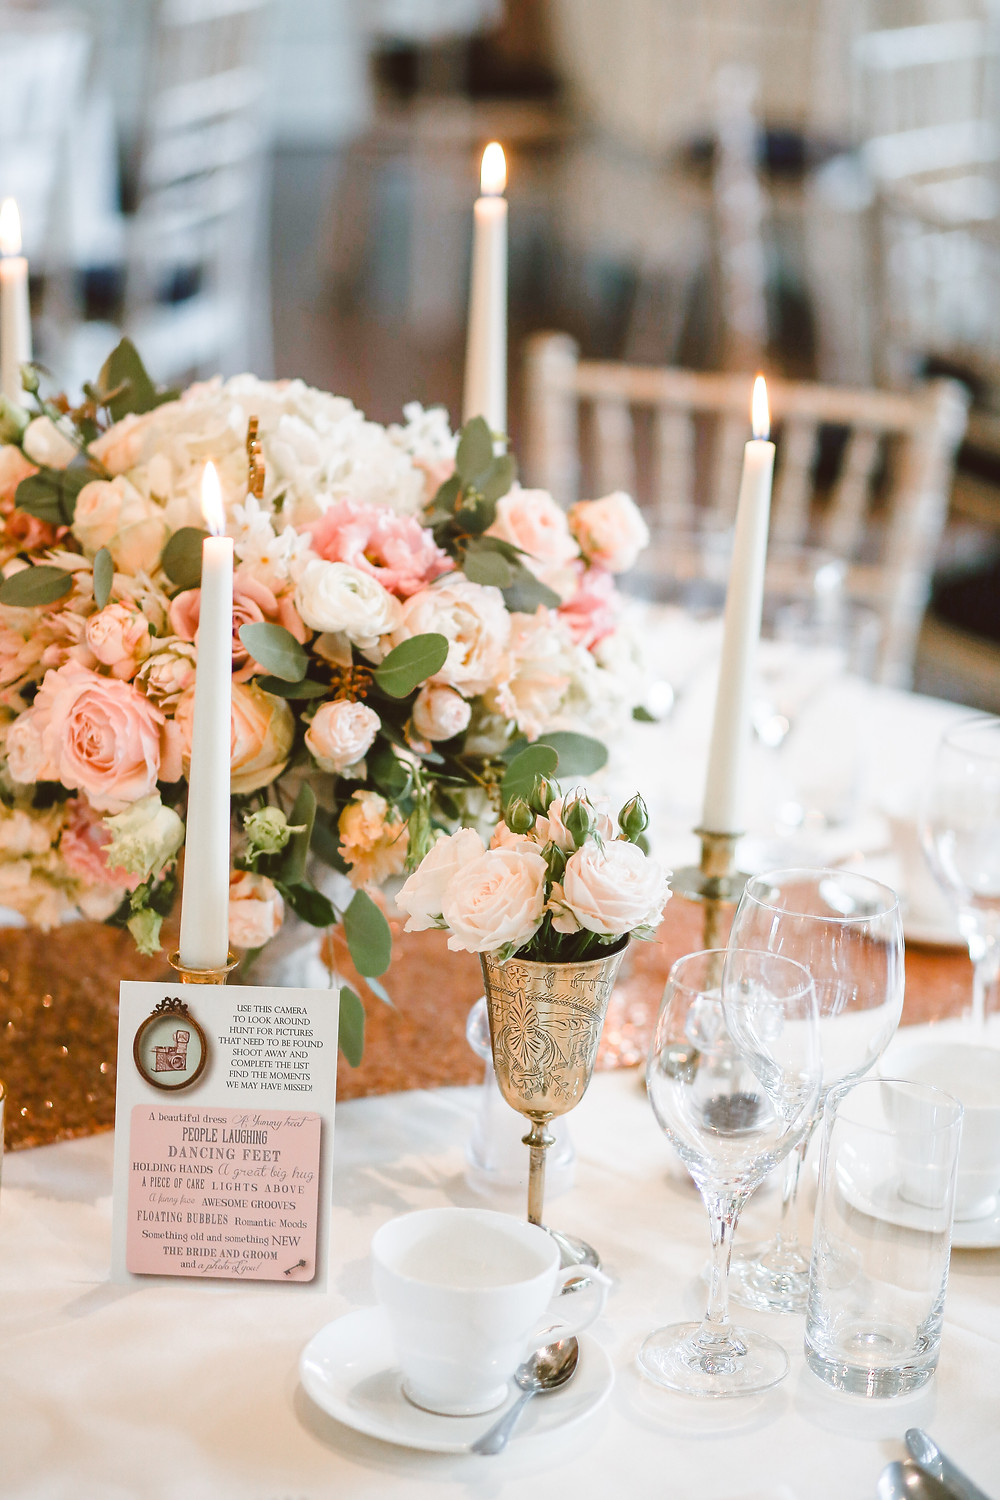 Romantic floral table setting with candles